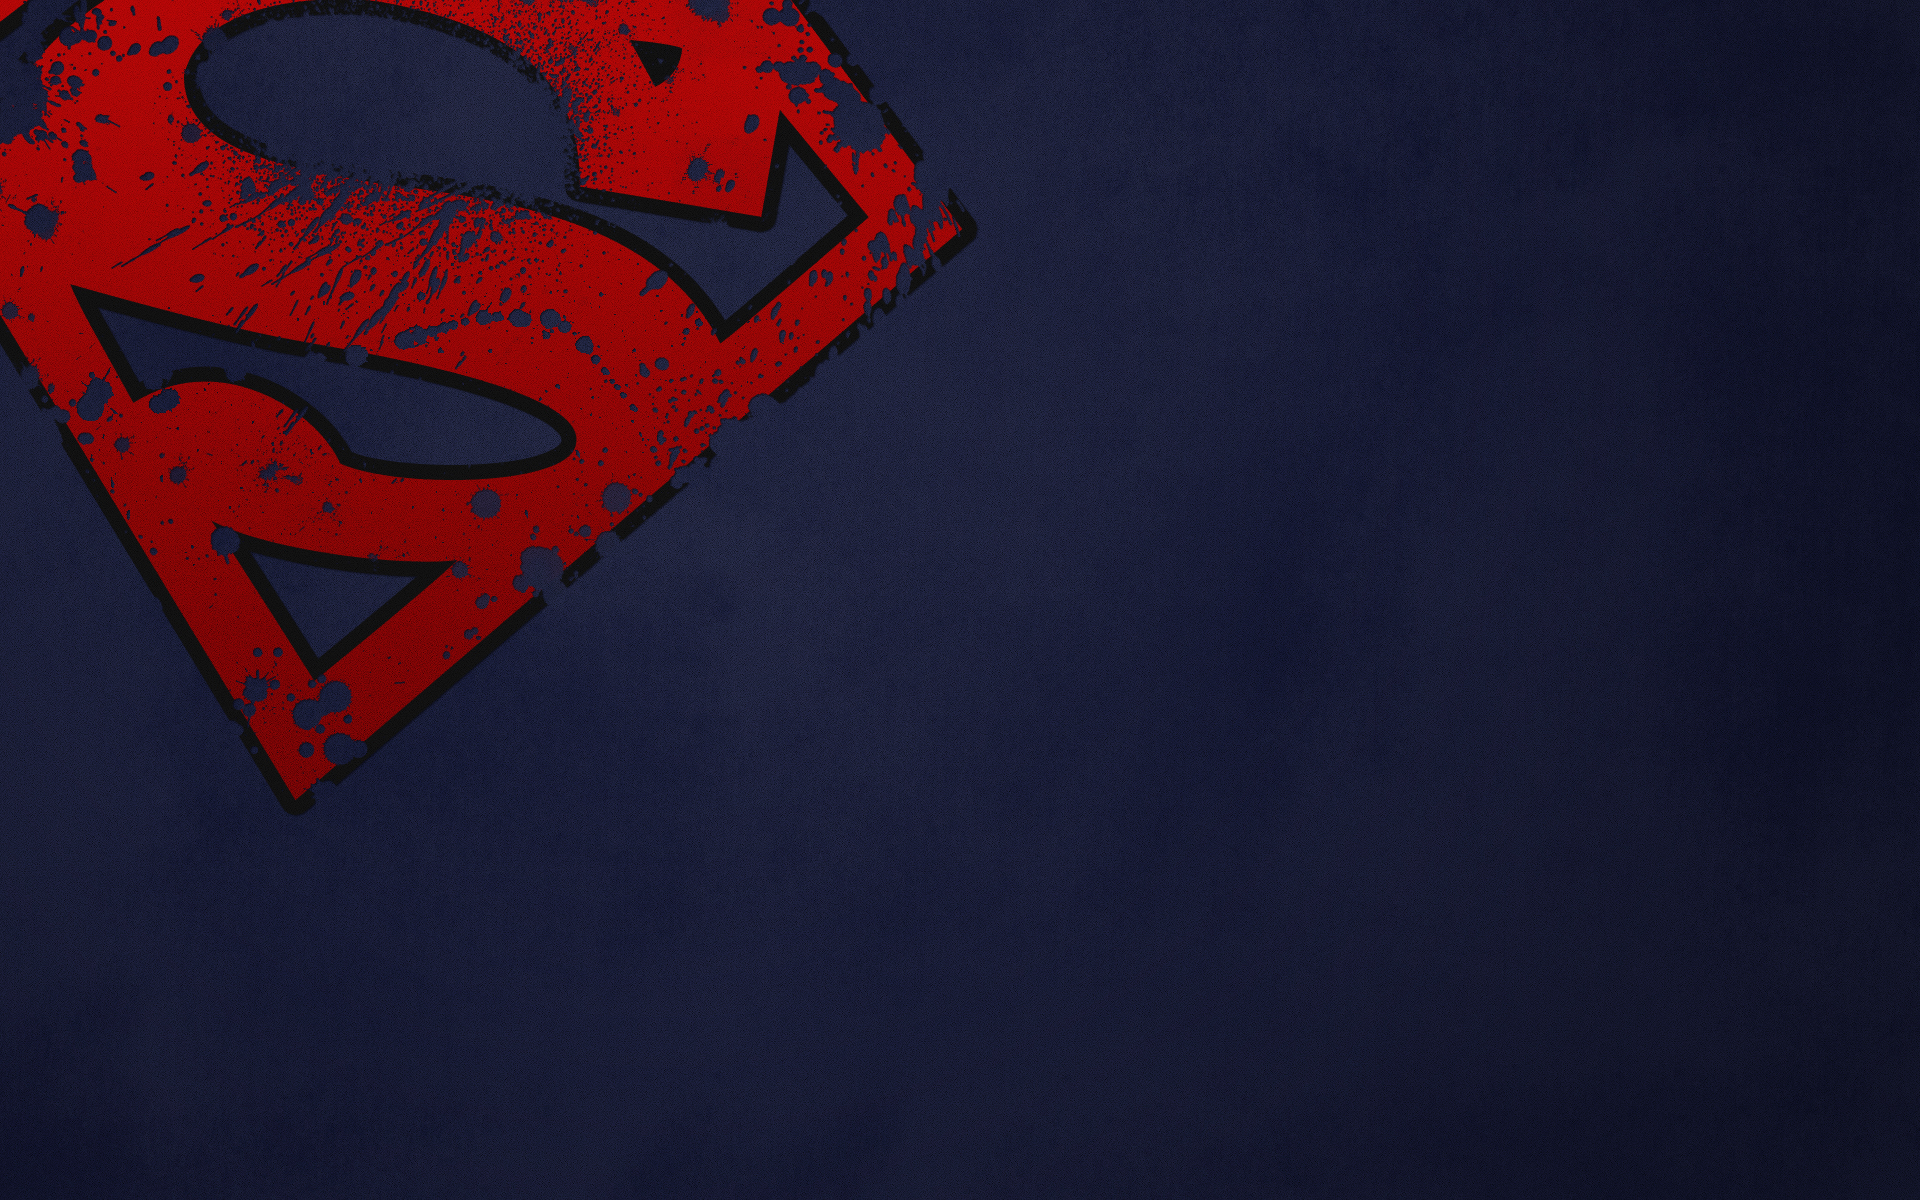 Superman Logo iPhone Wallpaper HD - WallpaperSafari